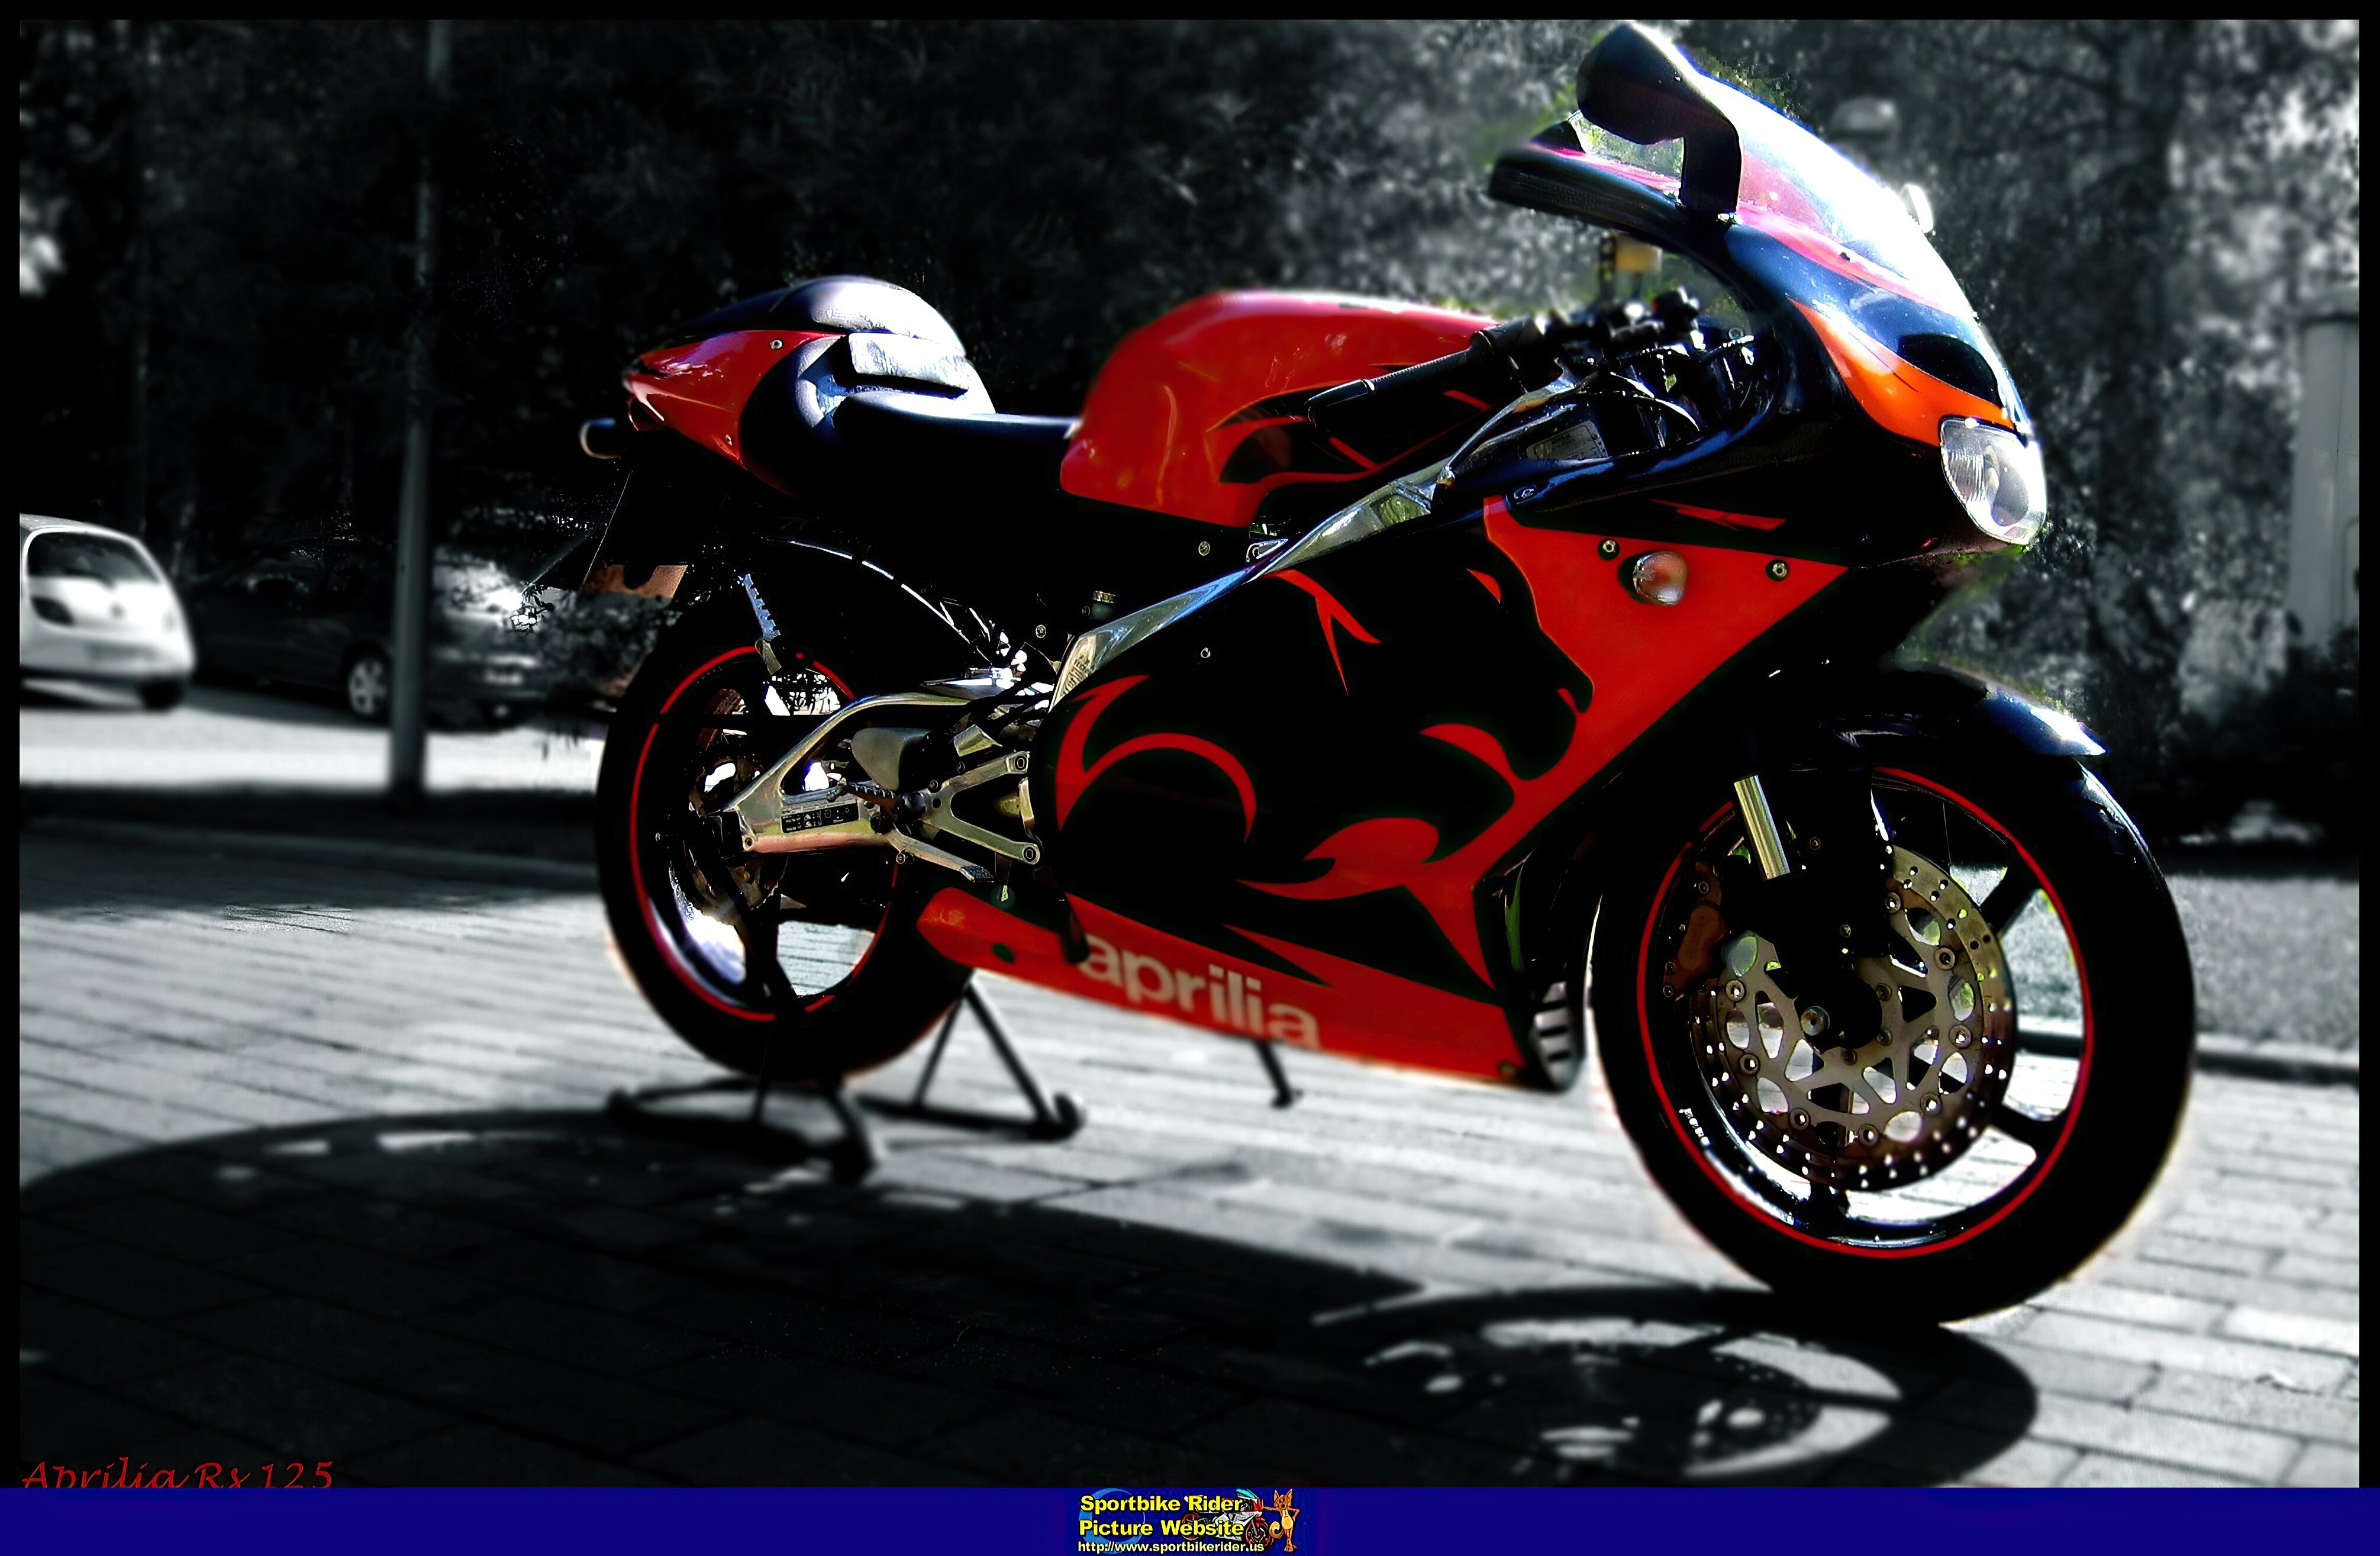 Aprilia RS Models - ID: 349350